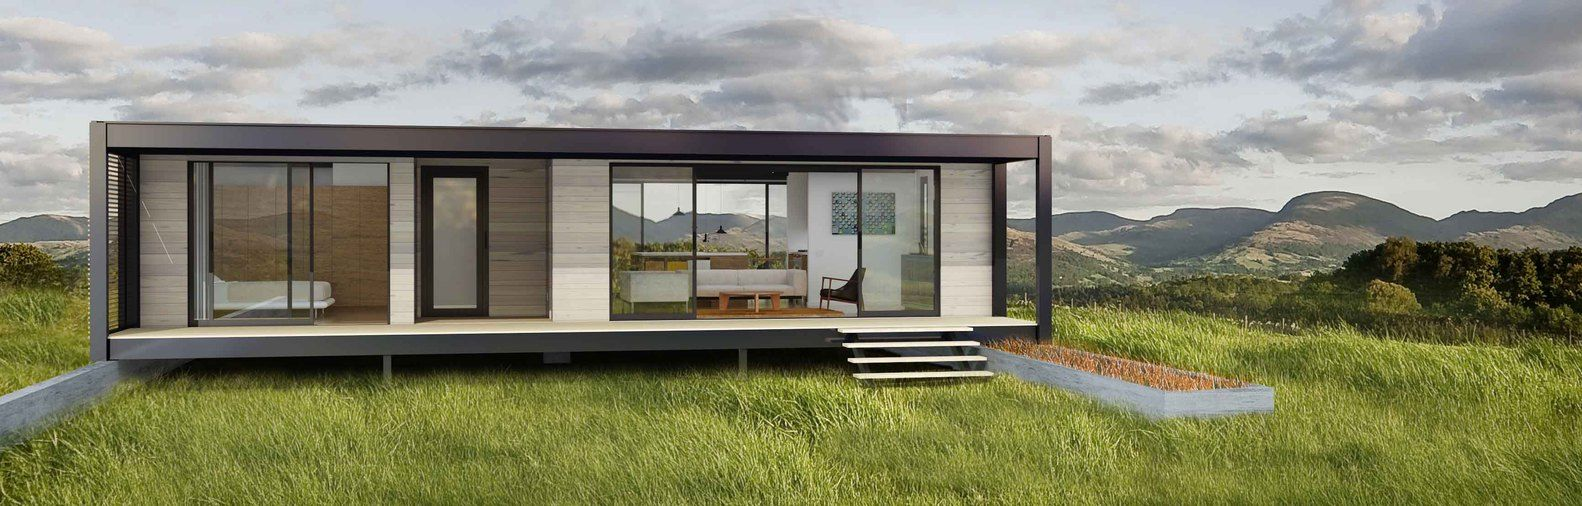 Gallery Of Connect Homes Offers Affordable Modern Sustainable Homes 29 Modern Prefab Homes Prefab Homes Modern Architecture Design